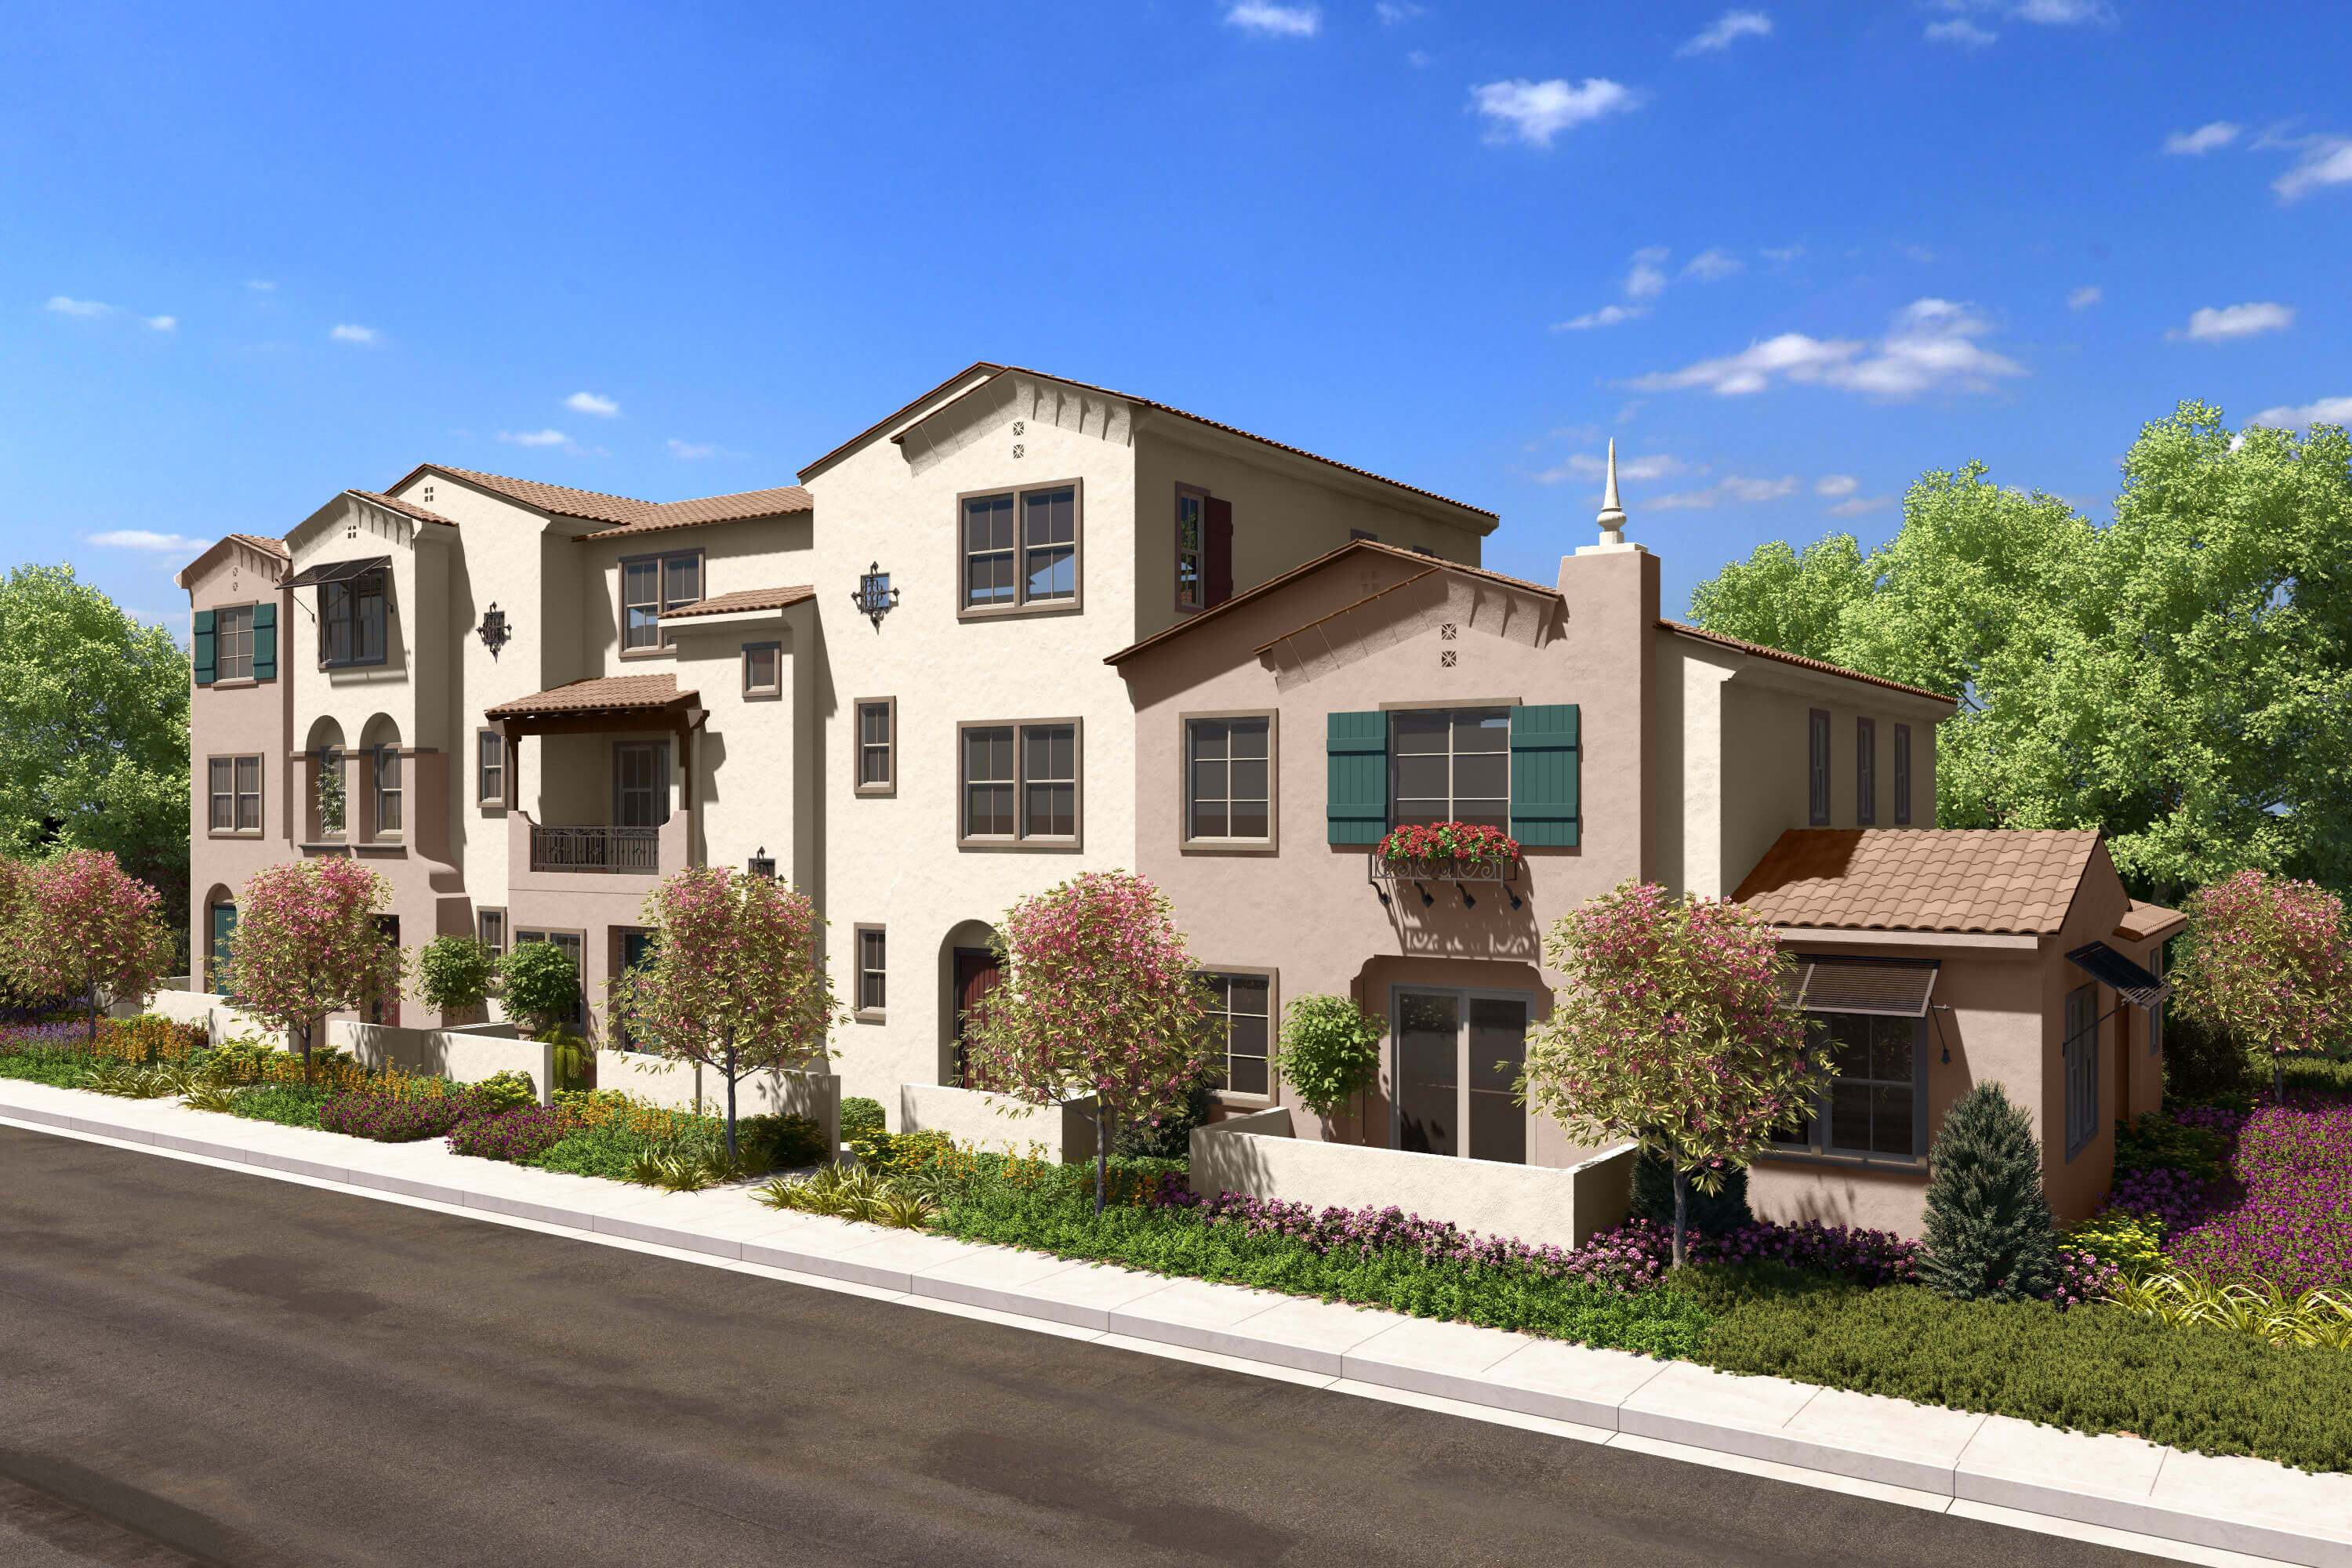 upland homes for sale homes for sale in upland ca homegain